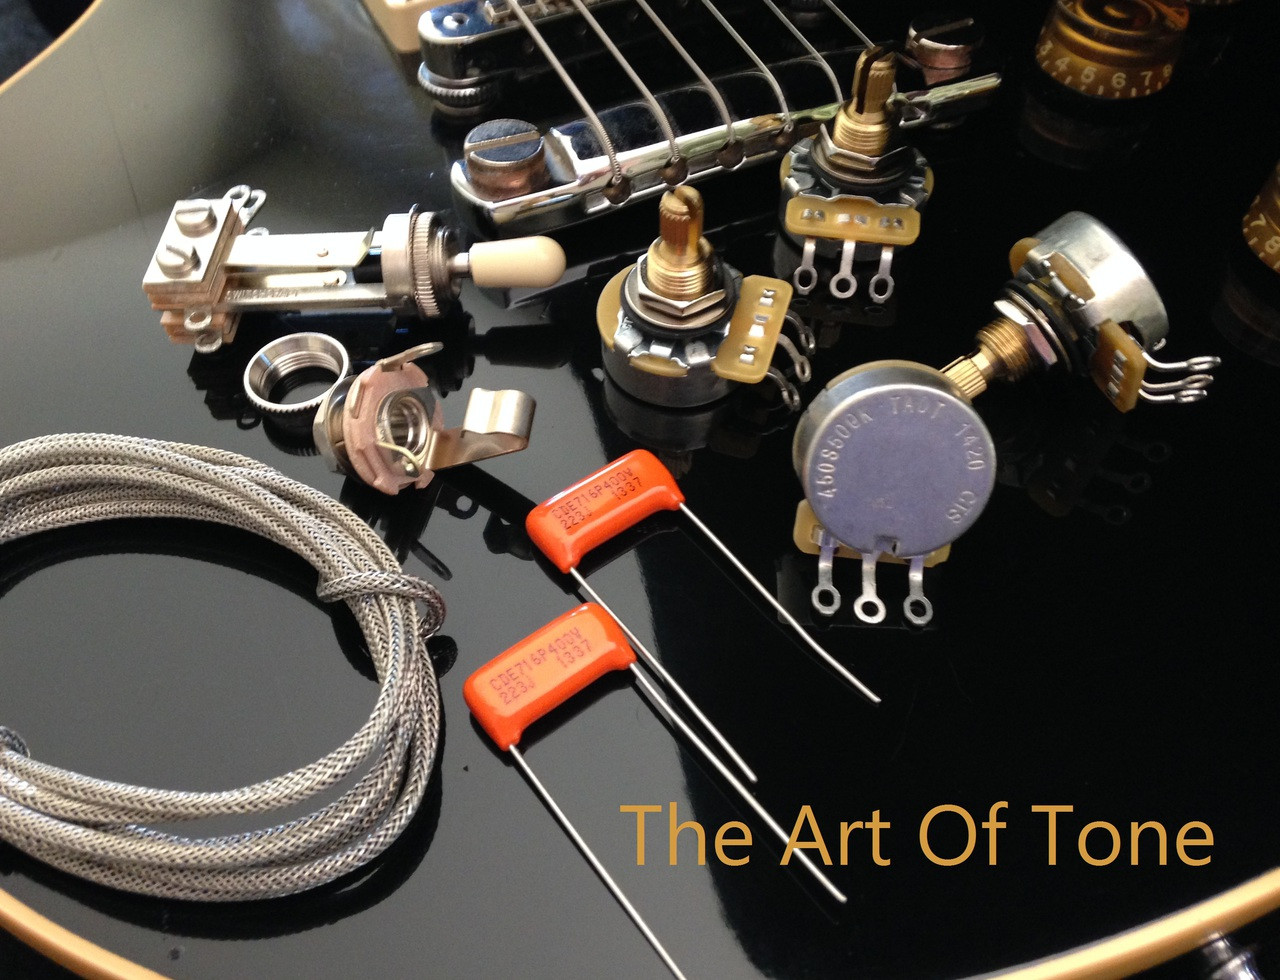 hight resolution of taot gibson les paul short shaft cts taot 450s 525k pots orange drop caps 500k the art of tone